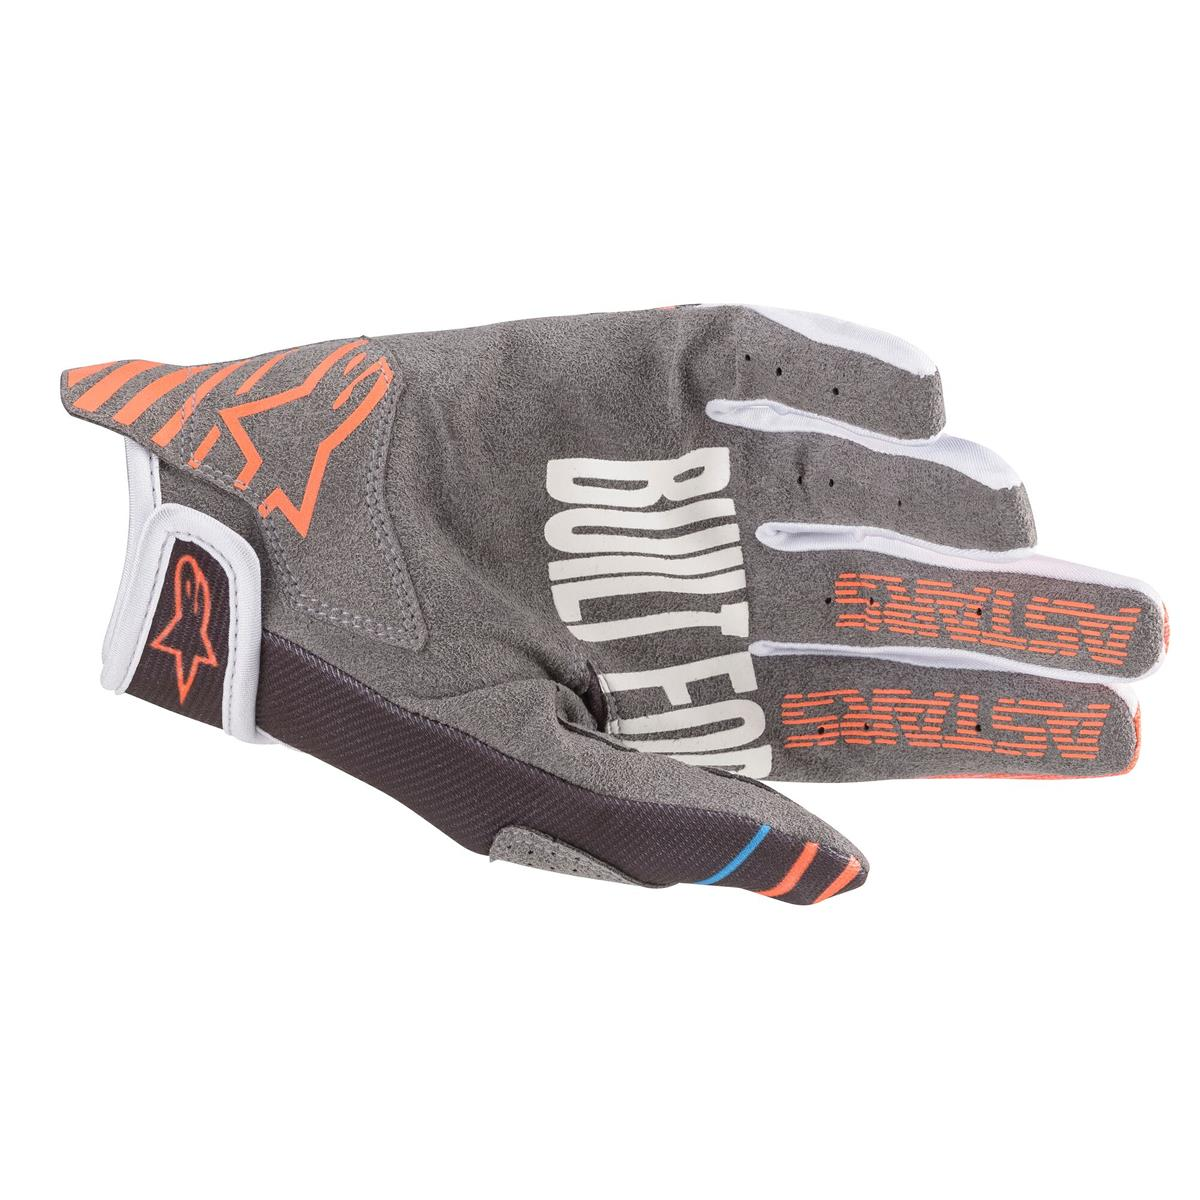 3561820 1444 2020 Alpinestars Radar Gloves Anthracite Orange Fluo Enduro Motocross Handschoenen Gants Handschuhe